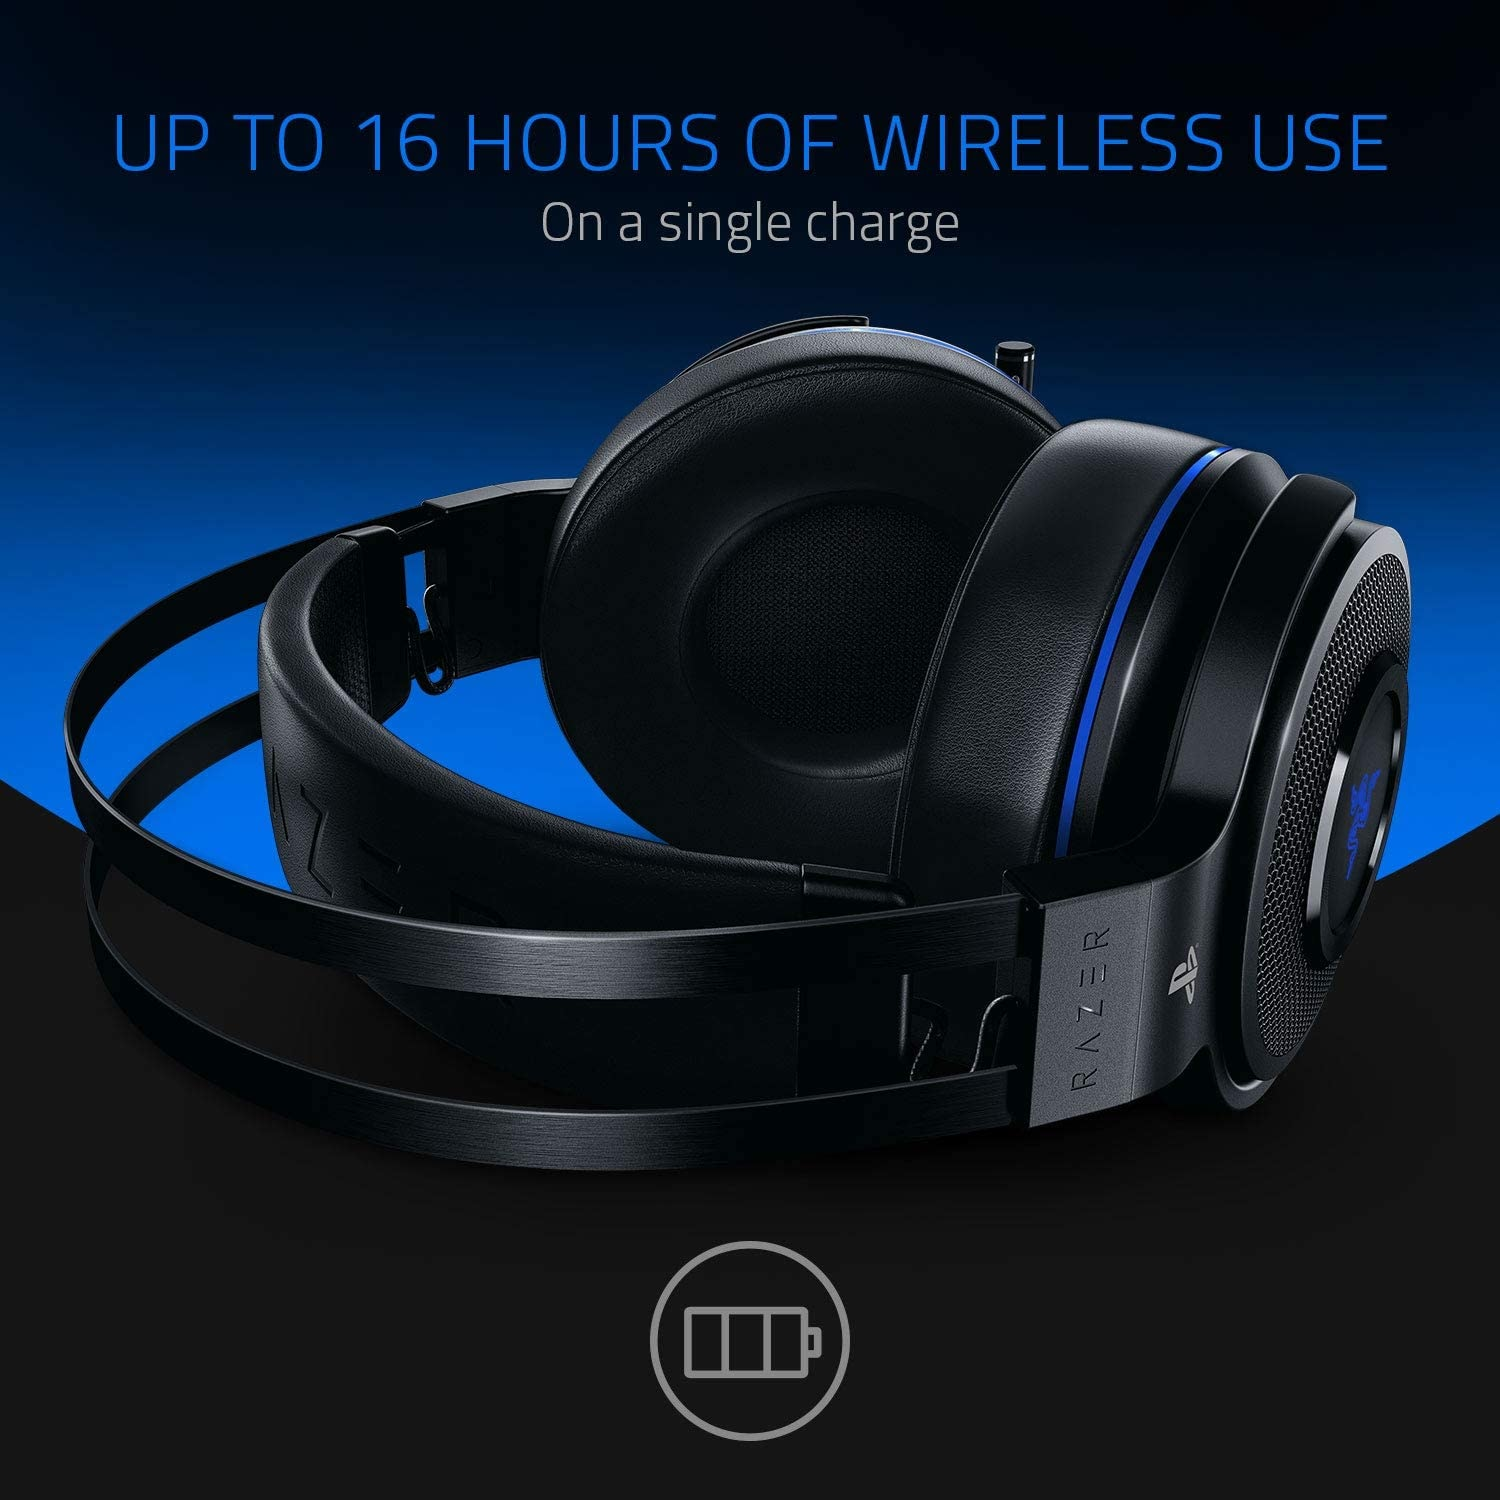 Razer Thresher 7.1 for PlayStation - Wireless Gaming Headset for PS4, PS5 and PC Wireless Headphones, Dolby 7.1 Black - 6